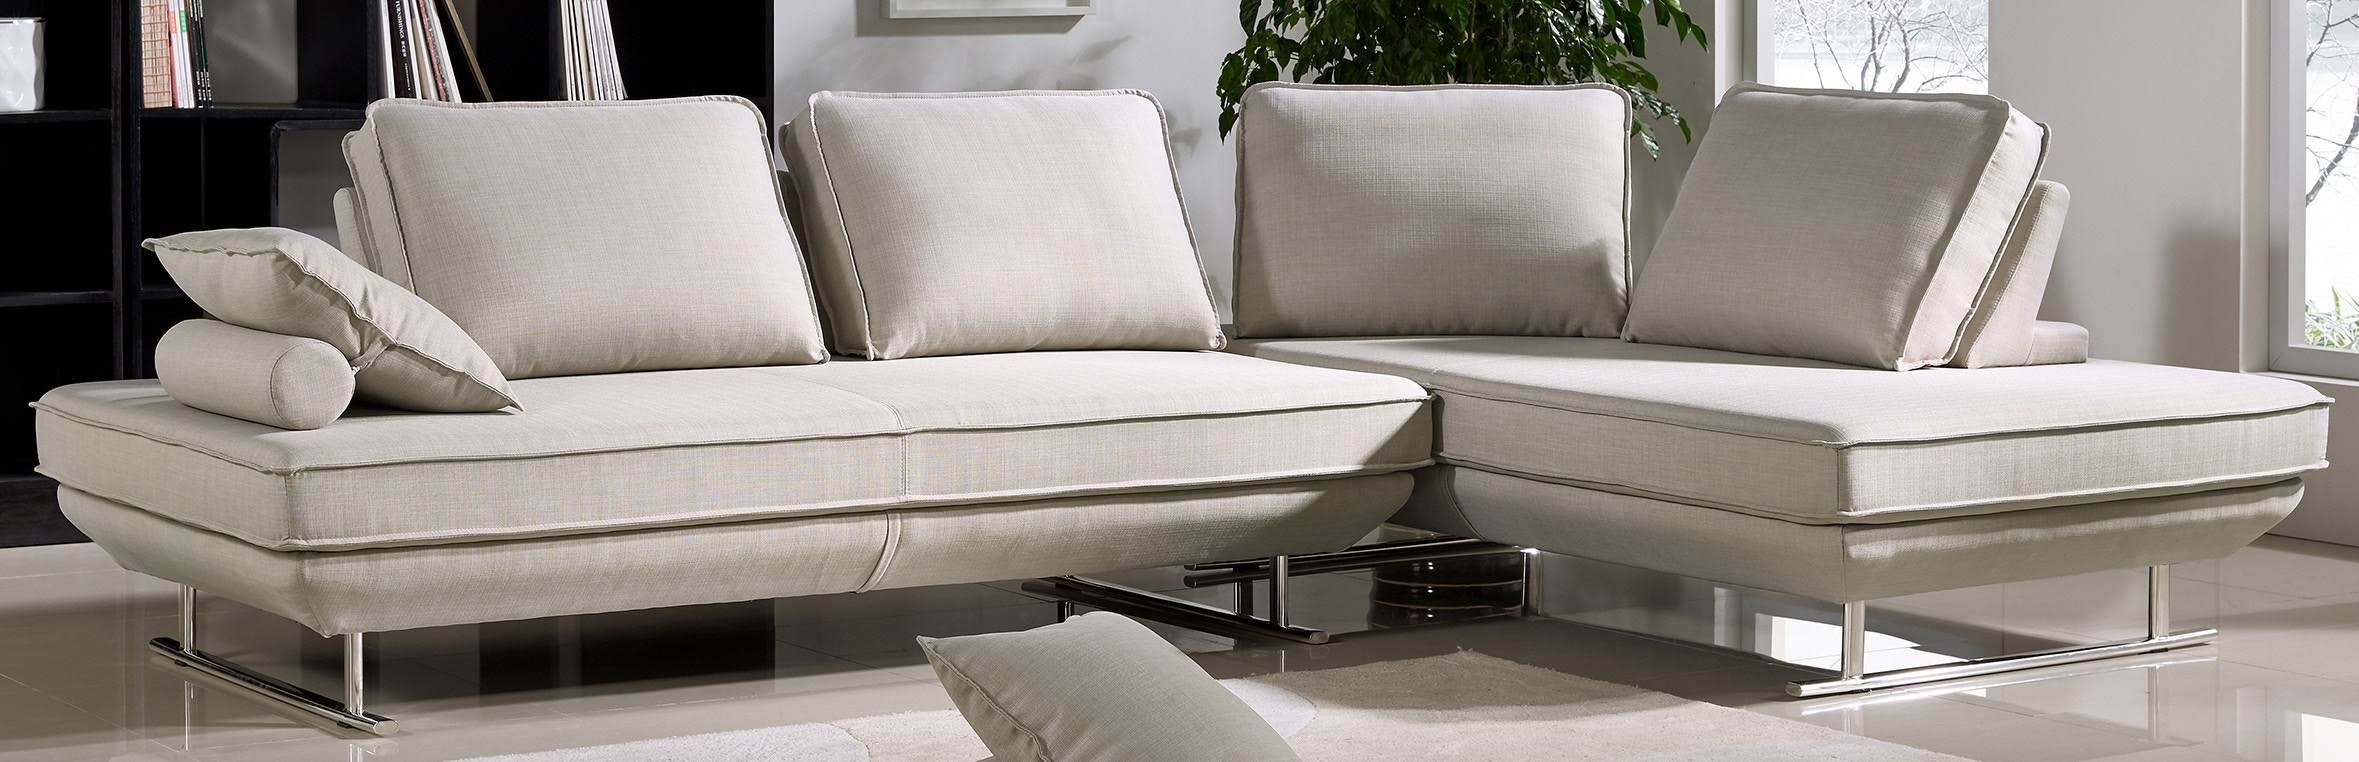 Diamond Sofa Dolce 2PC Lounge Seating Platforms With Moveable Backrest  Supports   Sand Fabric DOLCELG2PCSD2